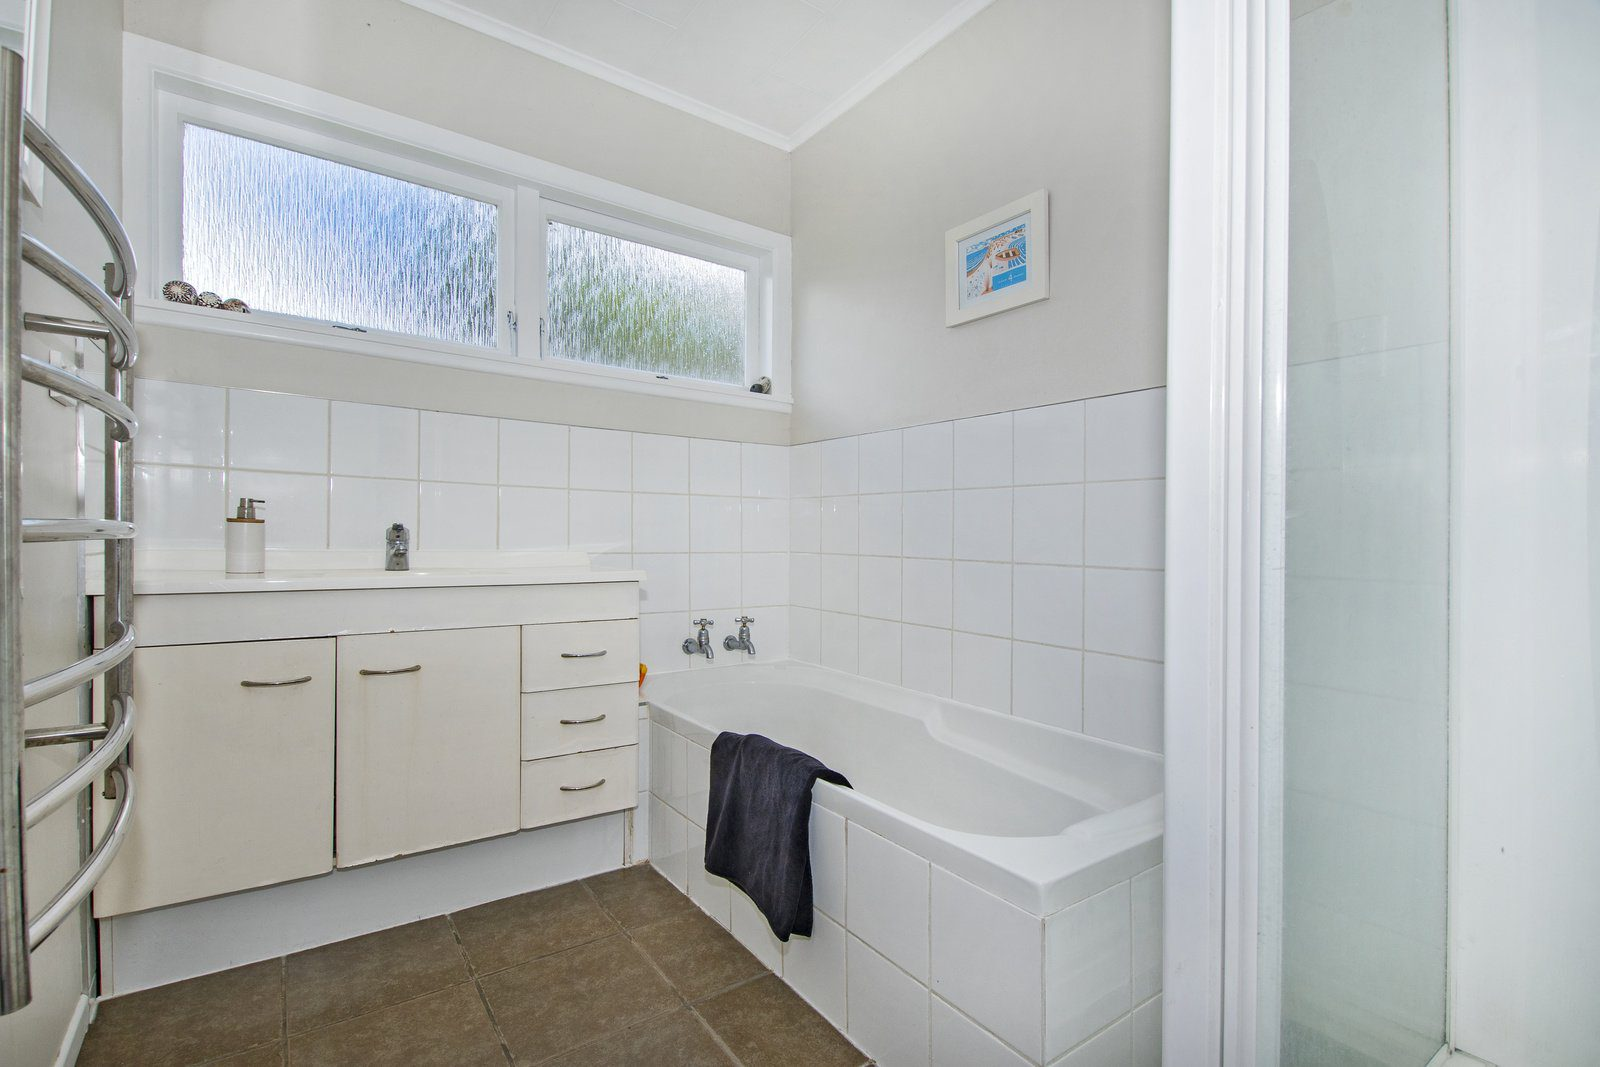 011_Open2view_ID492284-Clotworthy_St_22